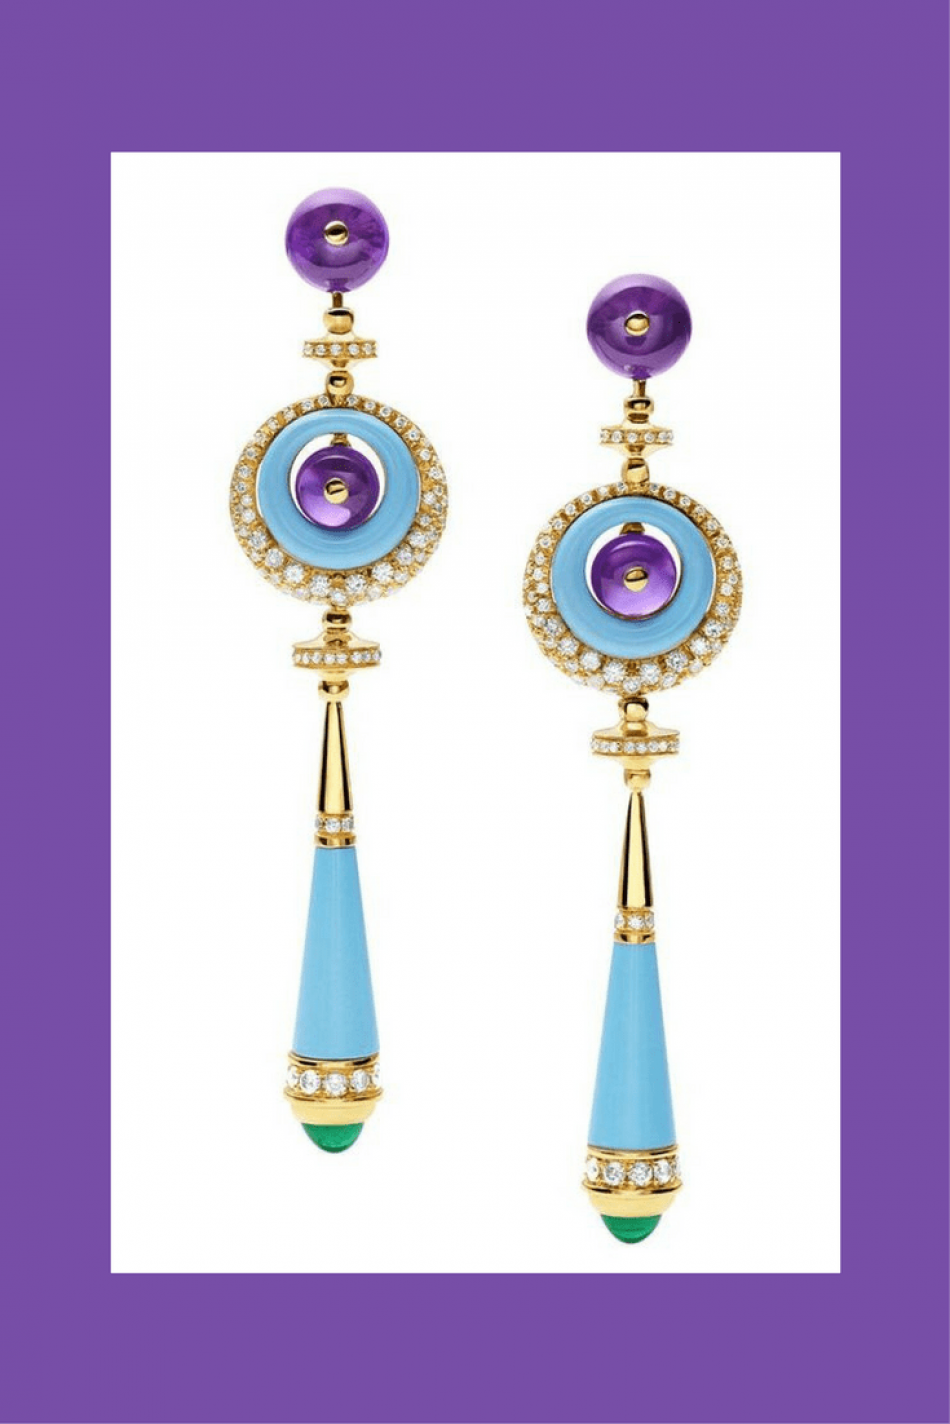 Jewelry in 2018 will be Ultra-Violet